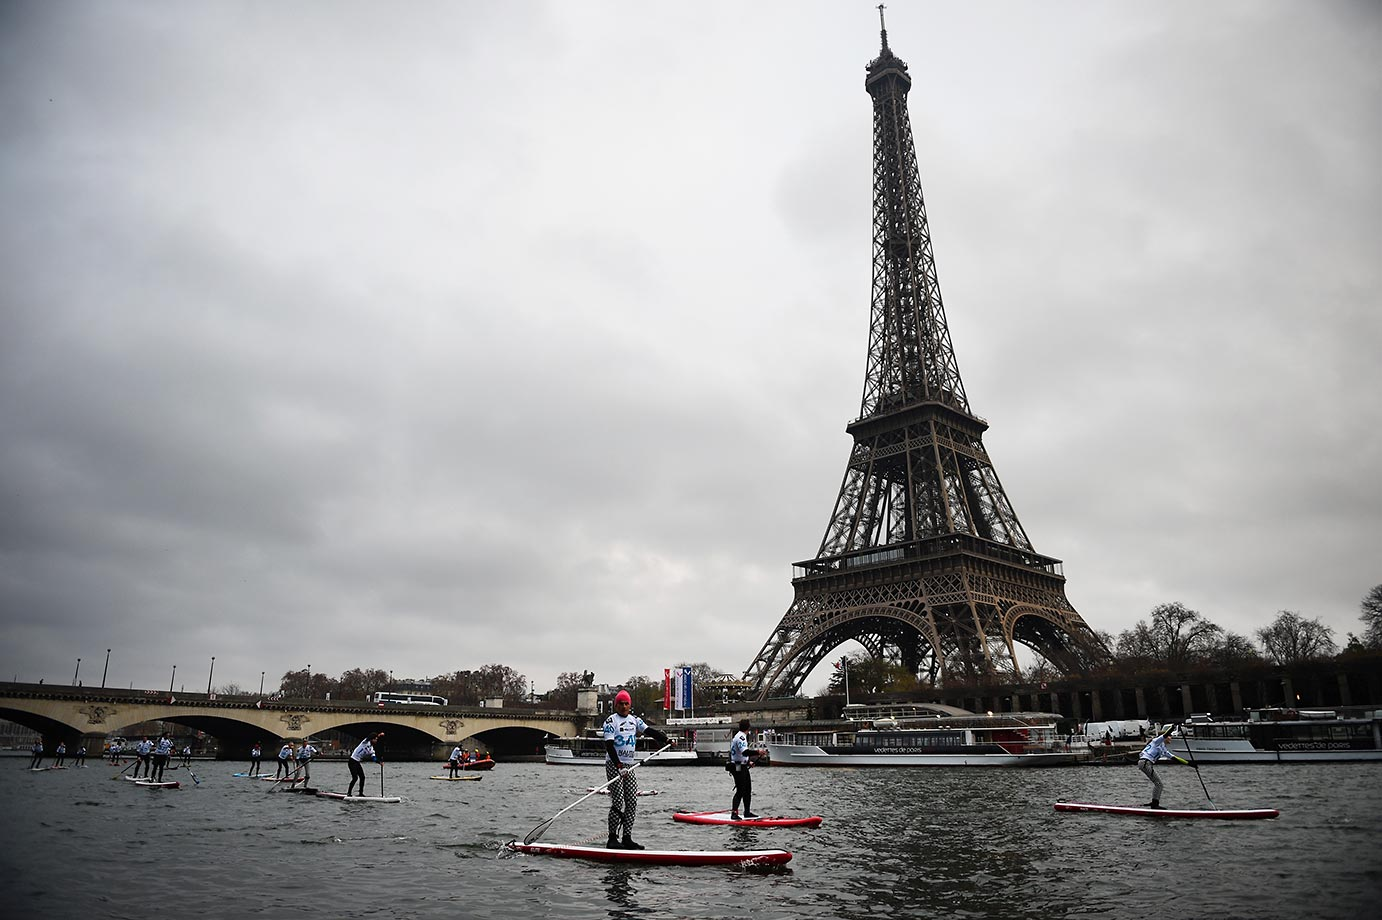 A paddle board race on the River Siene goes past The Eiffel Tour.